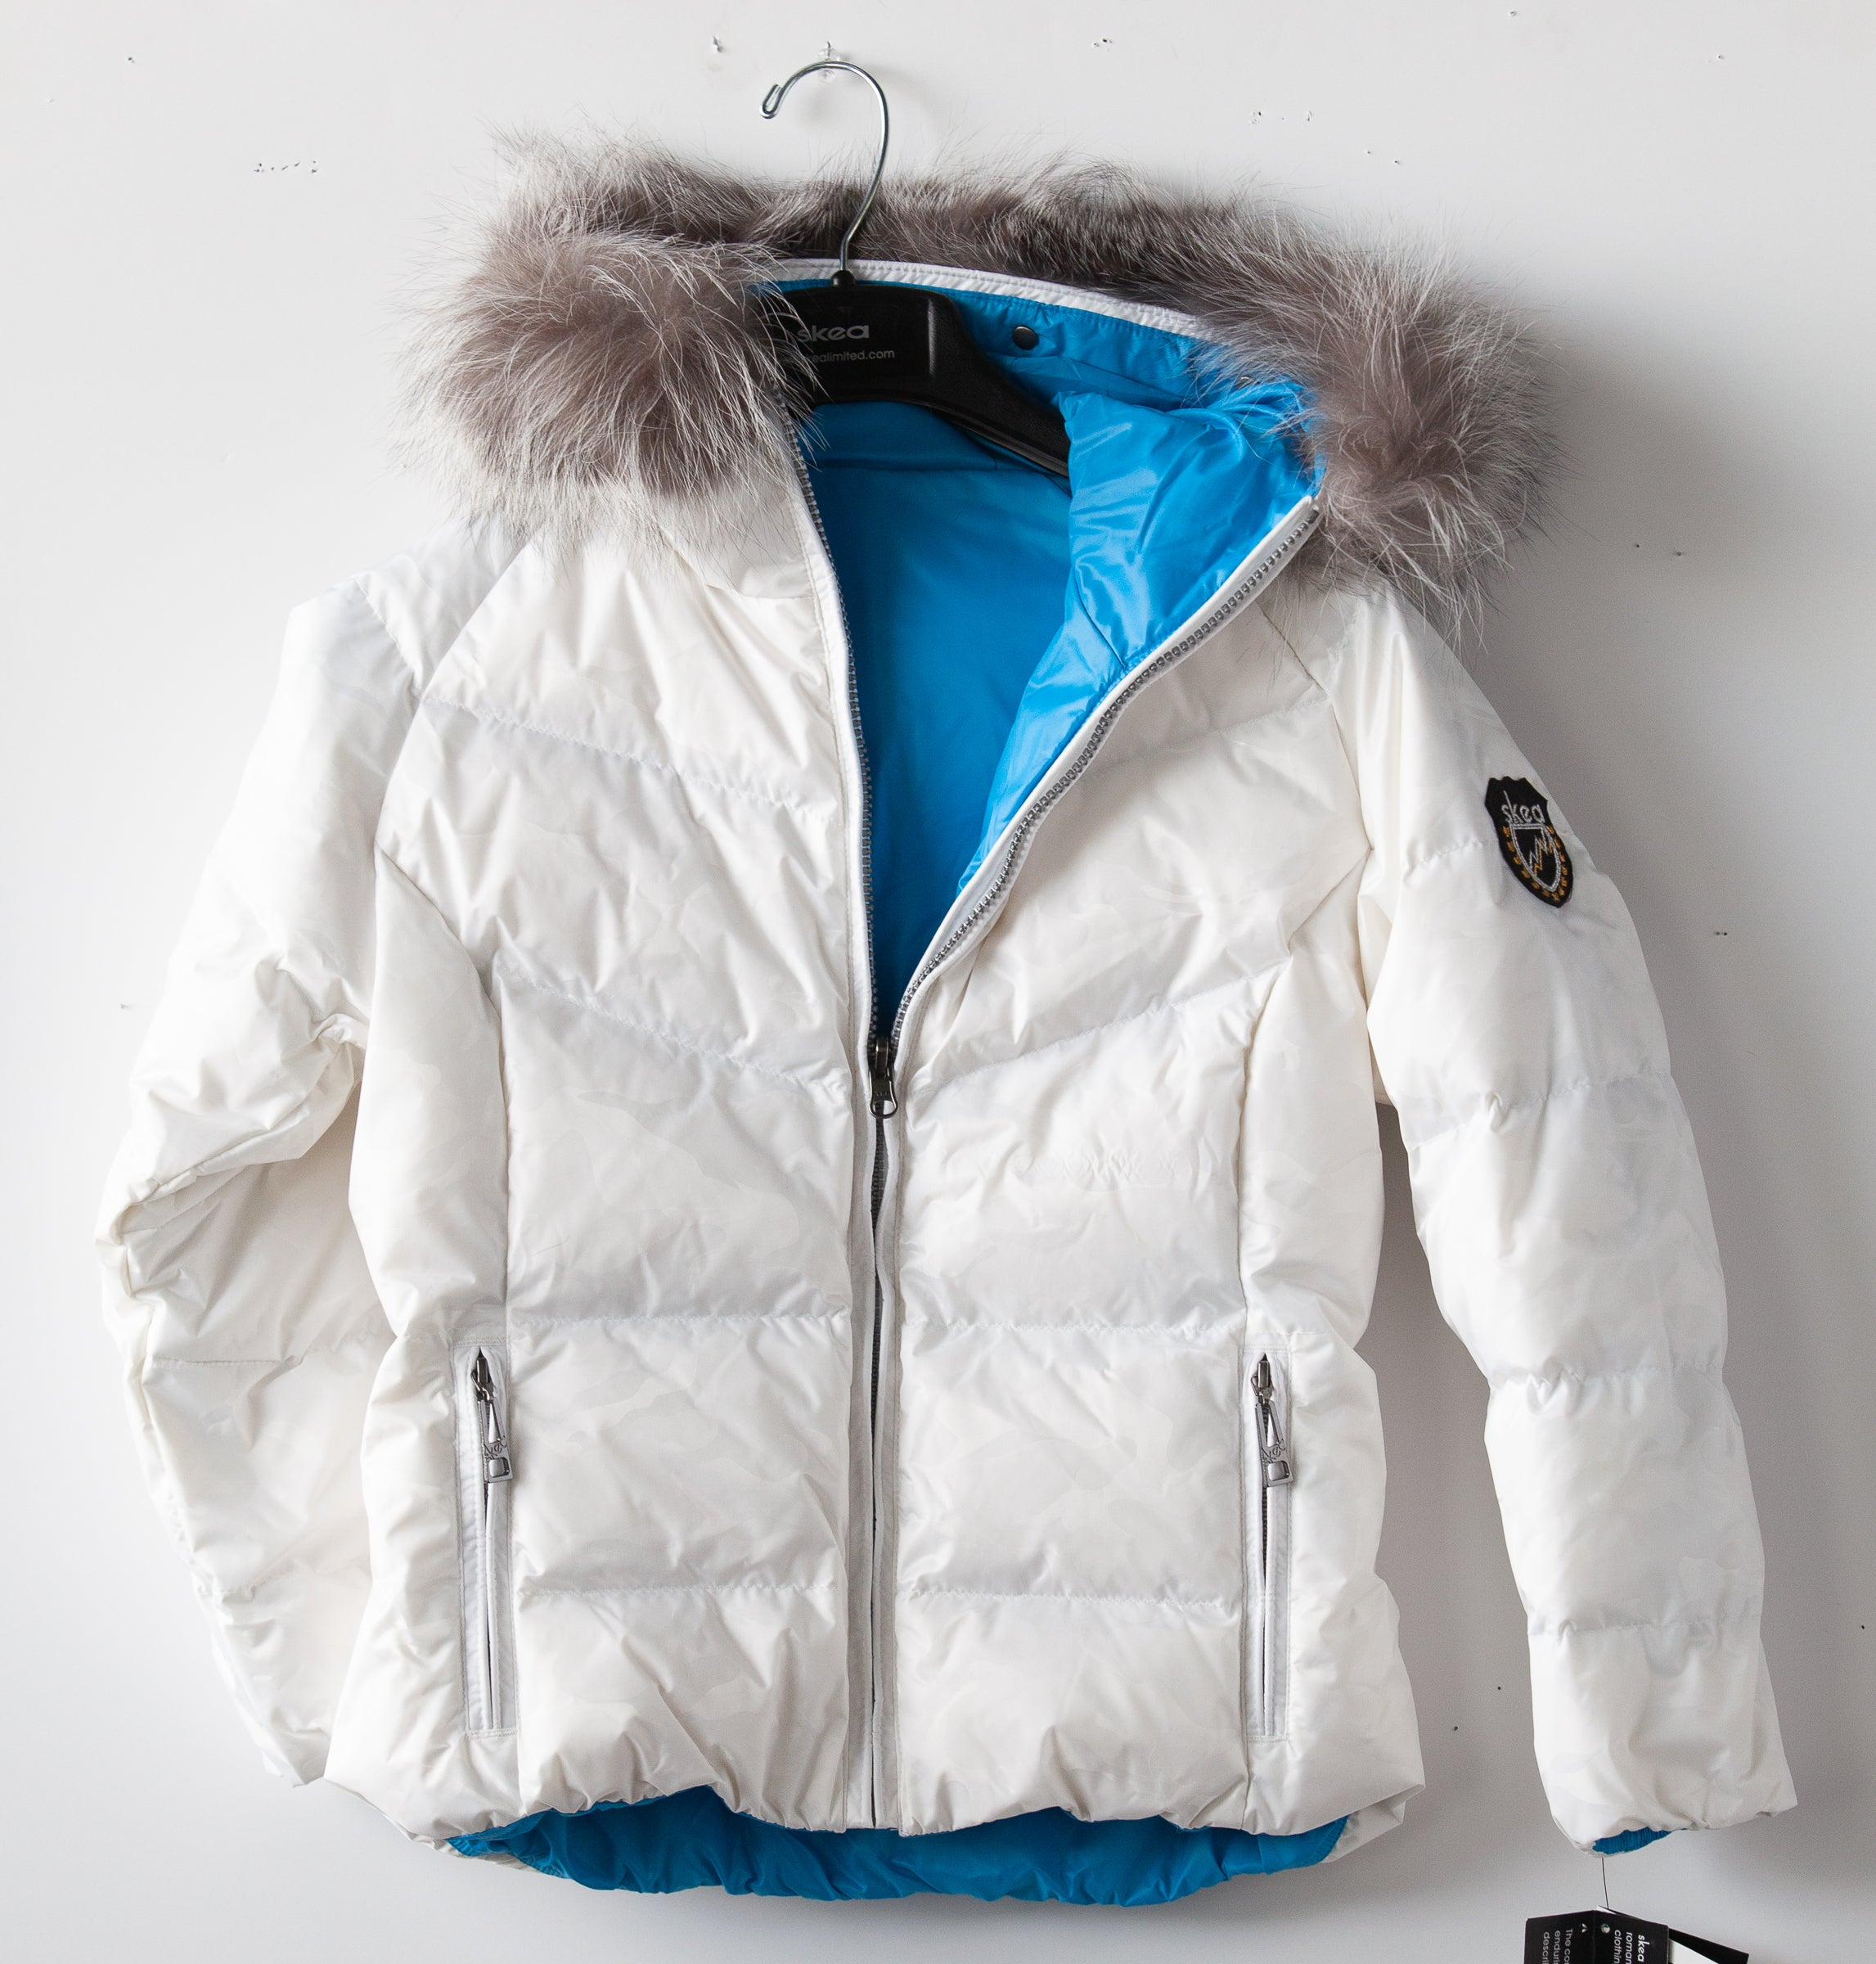 ski jackets, ski pants, luxury skiwear, ski apparel, ski fashion, fur ski apparel, fur trim, Little Miss JAVA PARKA, Skea Limited, Skea Limited - Skea Limited